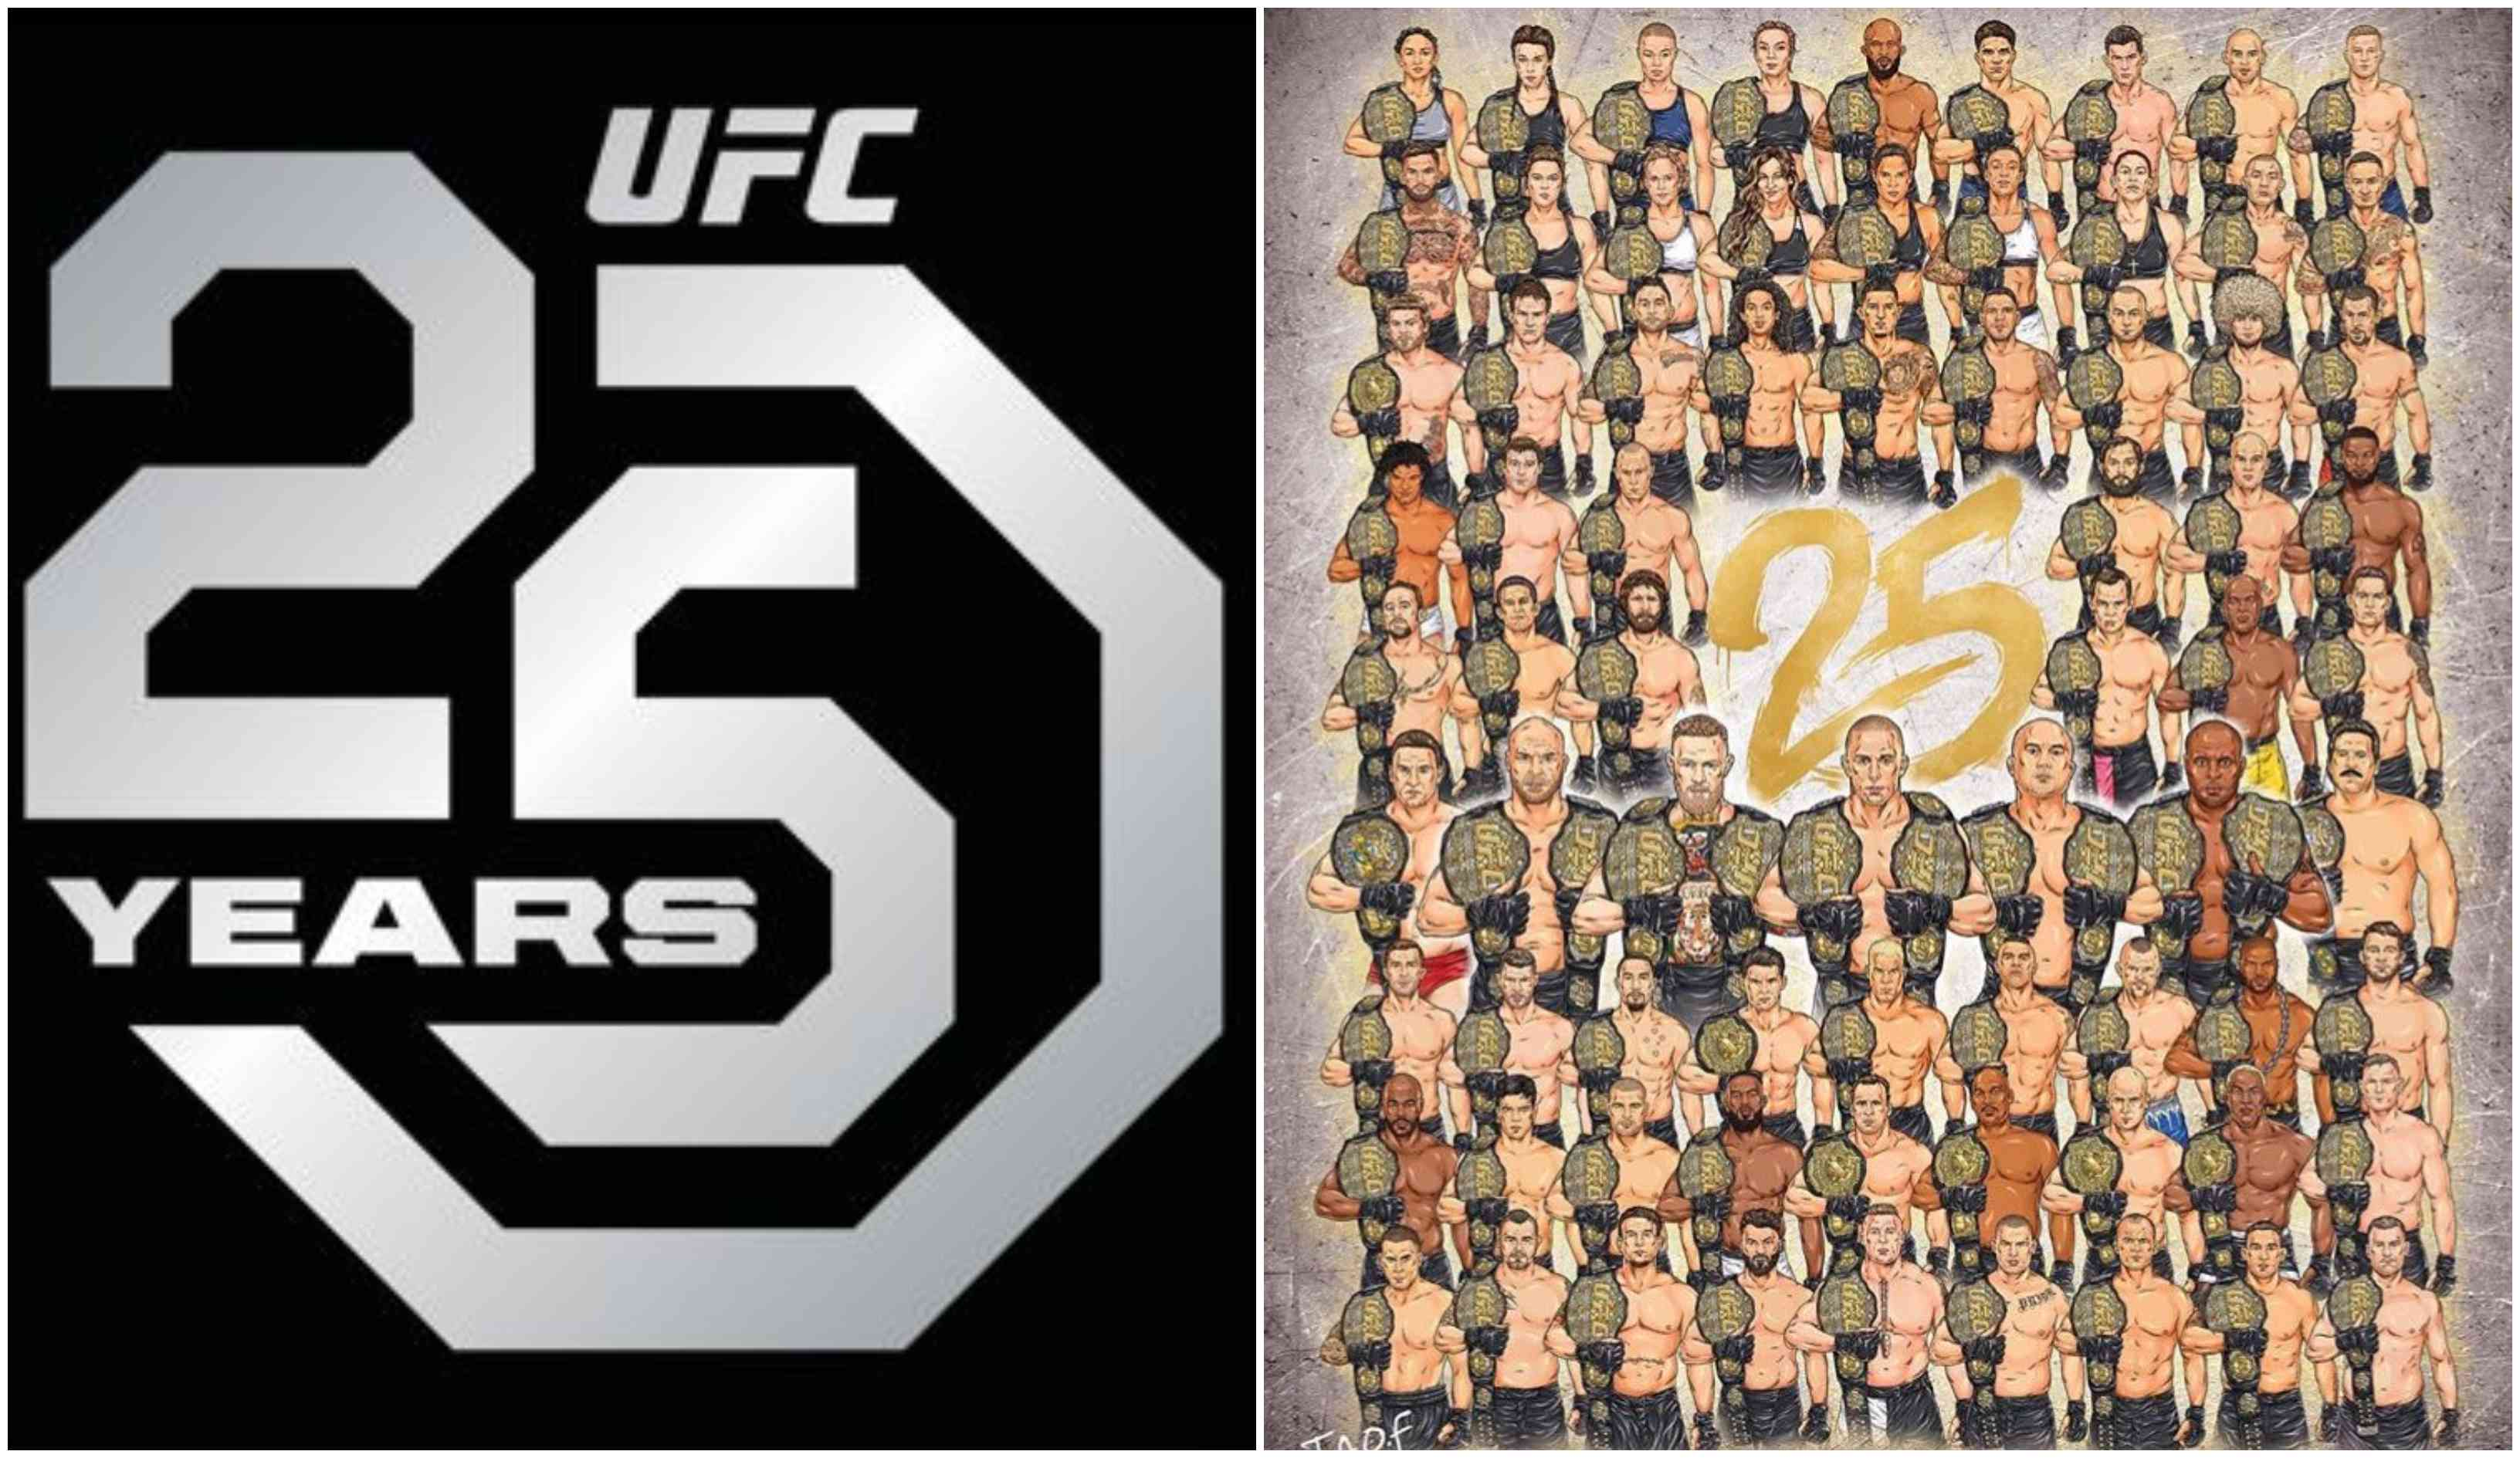 Watch: 25 years of the UFC in short! - UFC